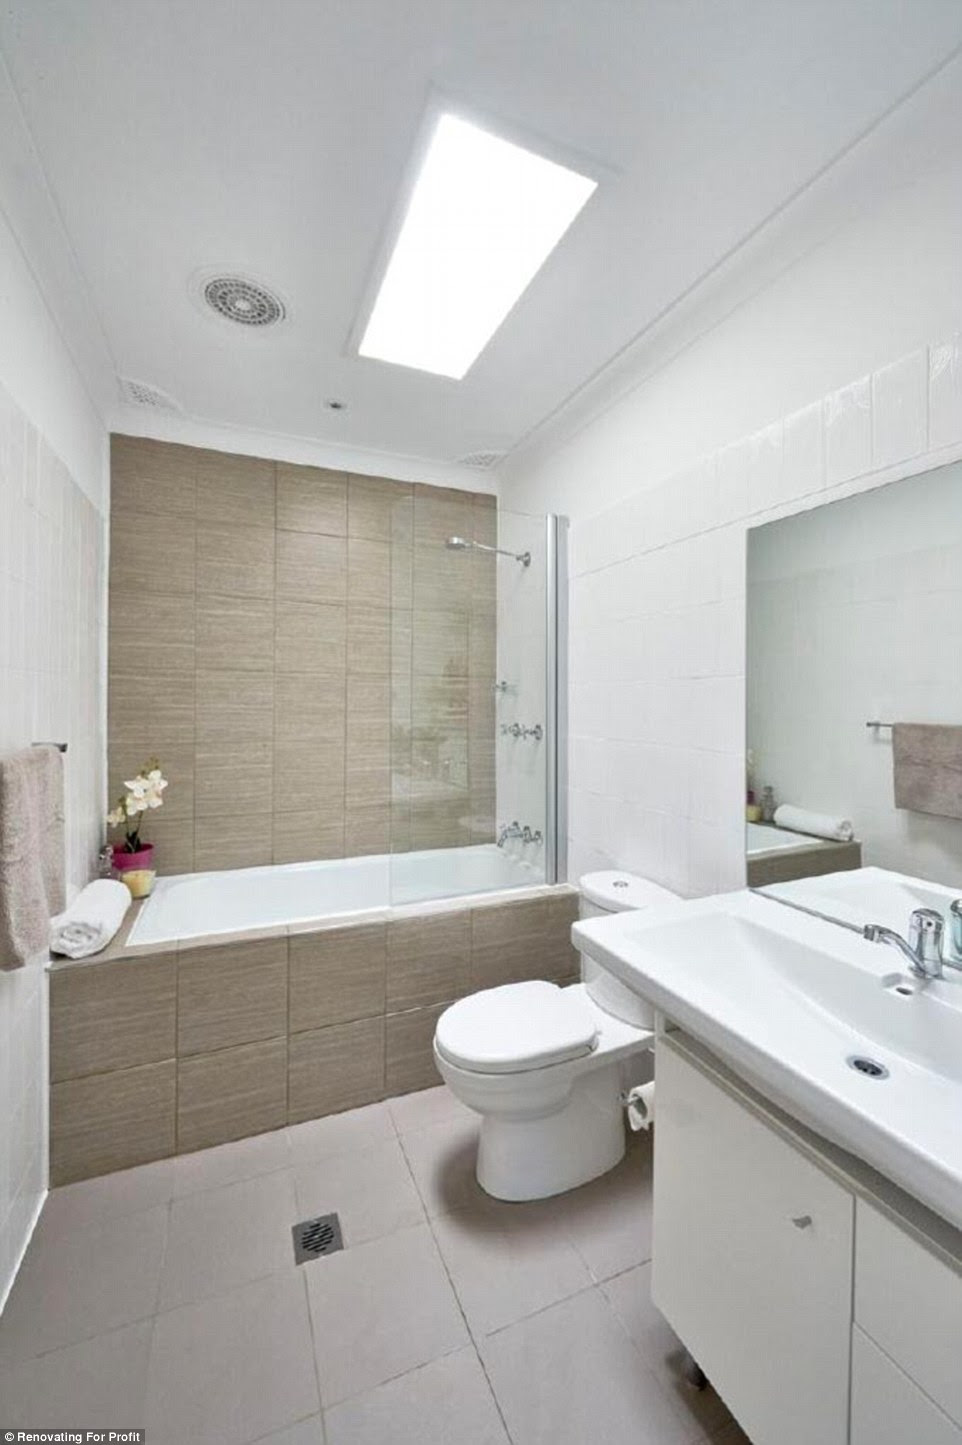 2EF1296100000578 3340573 Ms_Barber_said_buying_flatpack_vanities_and_cabinets_is_more_aff a 25_1448950109750